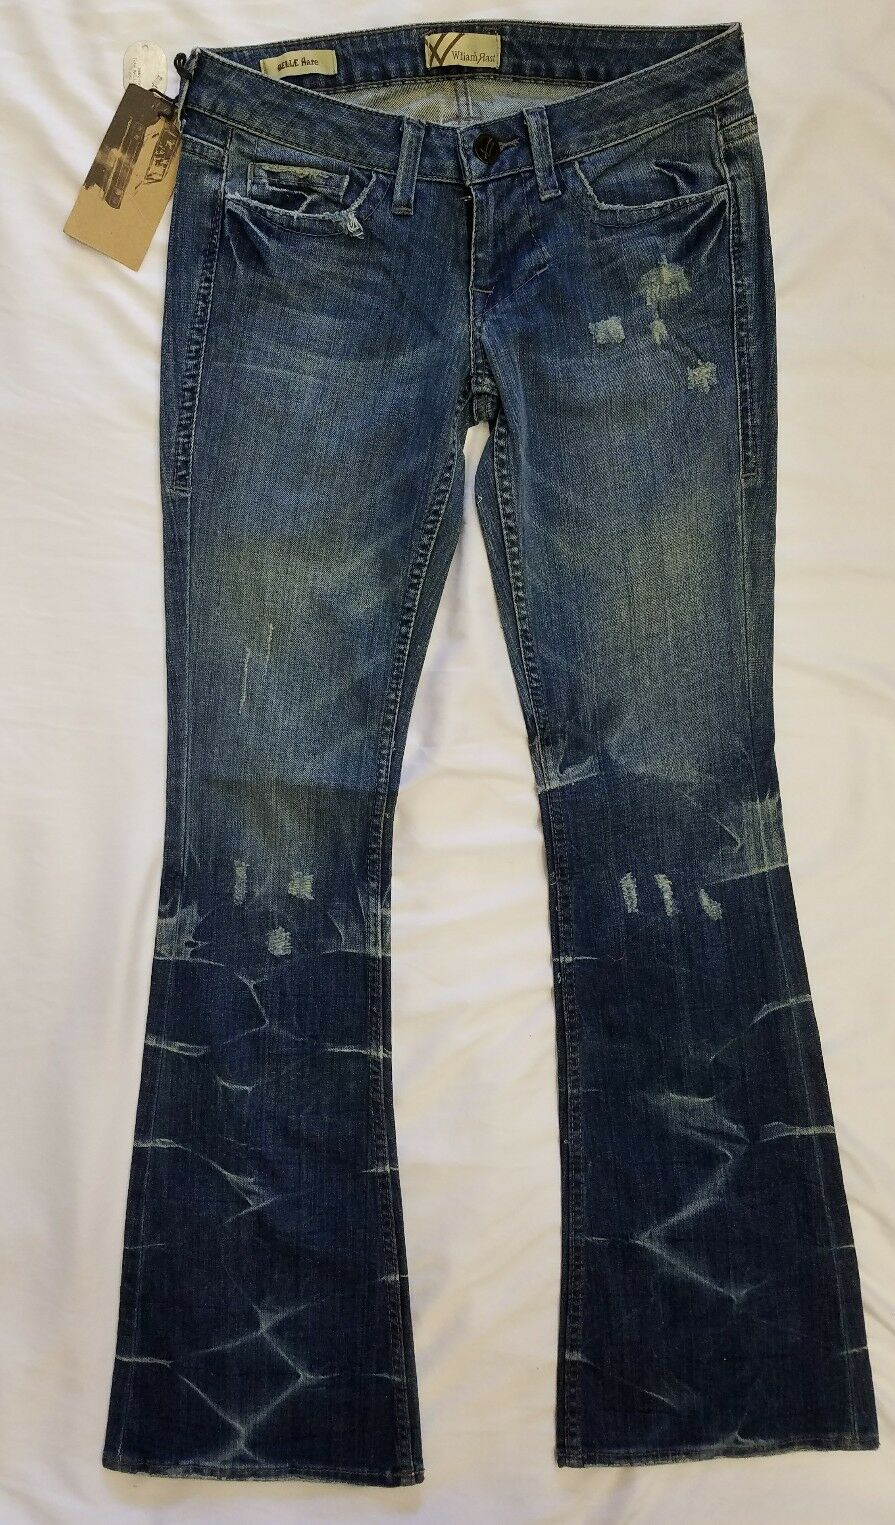 NWTWilliam Rast Women's Belle Flare Jeans In Pony Tail Size 26 MSRP  200